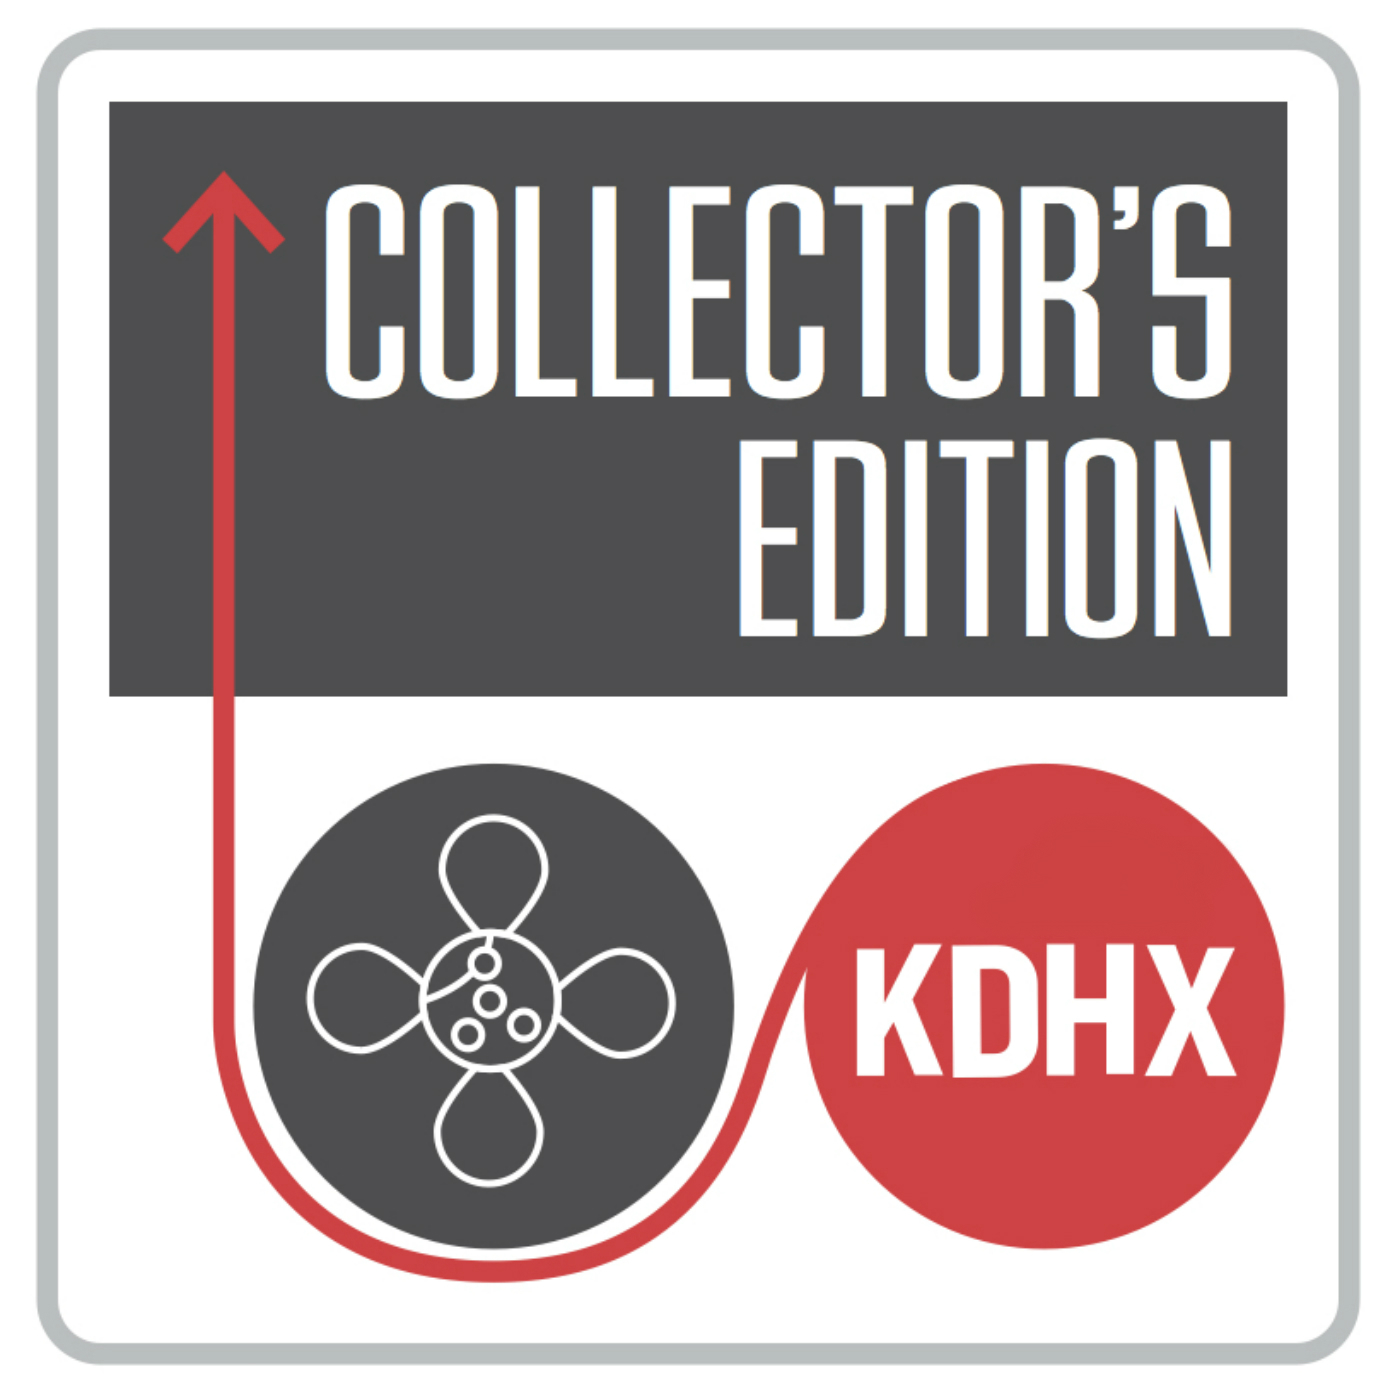 Collector's Edition show art